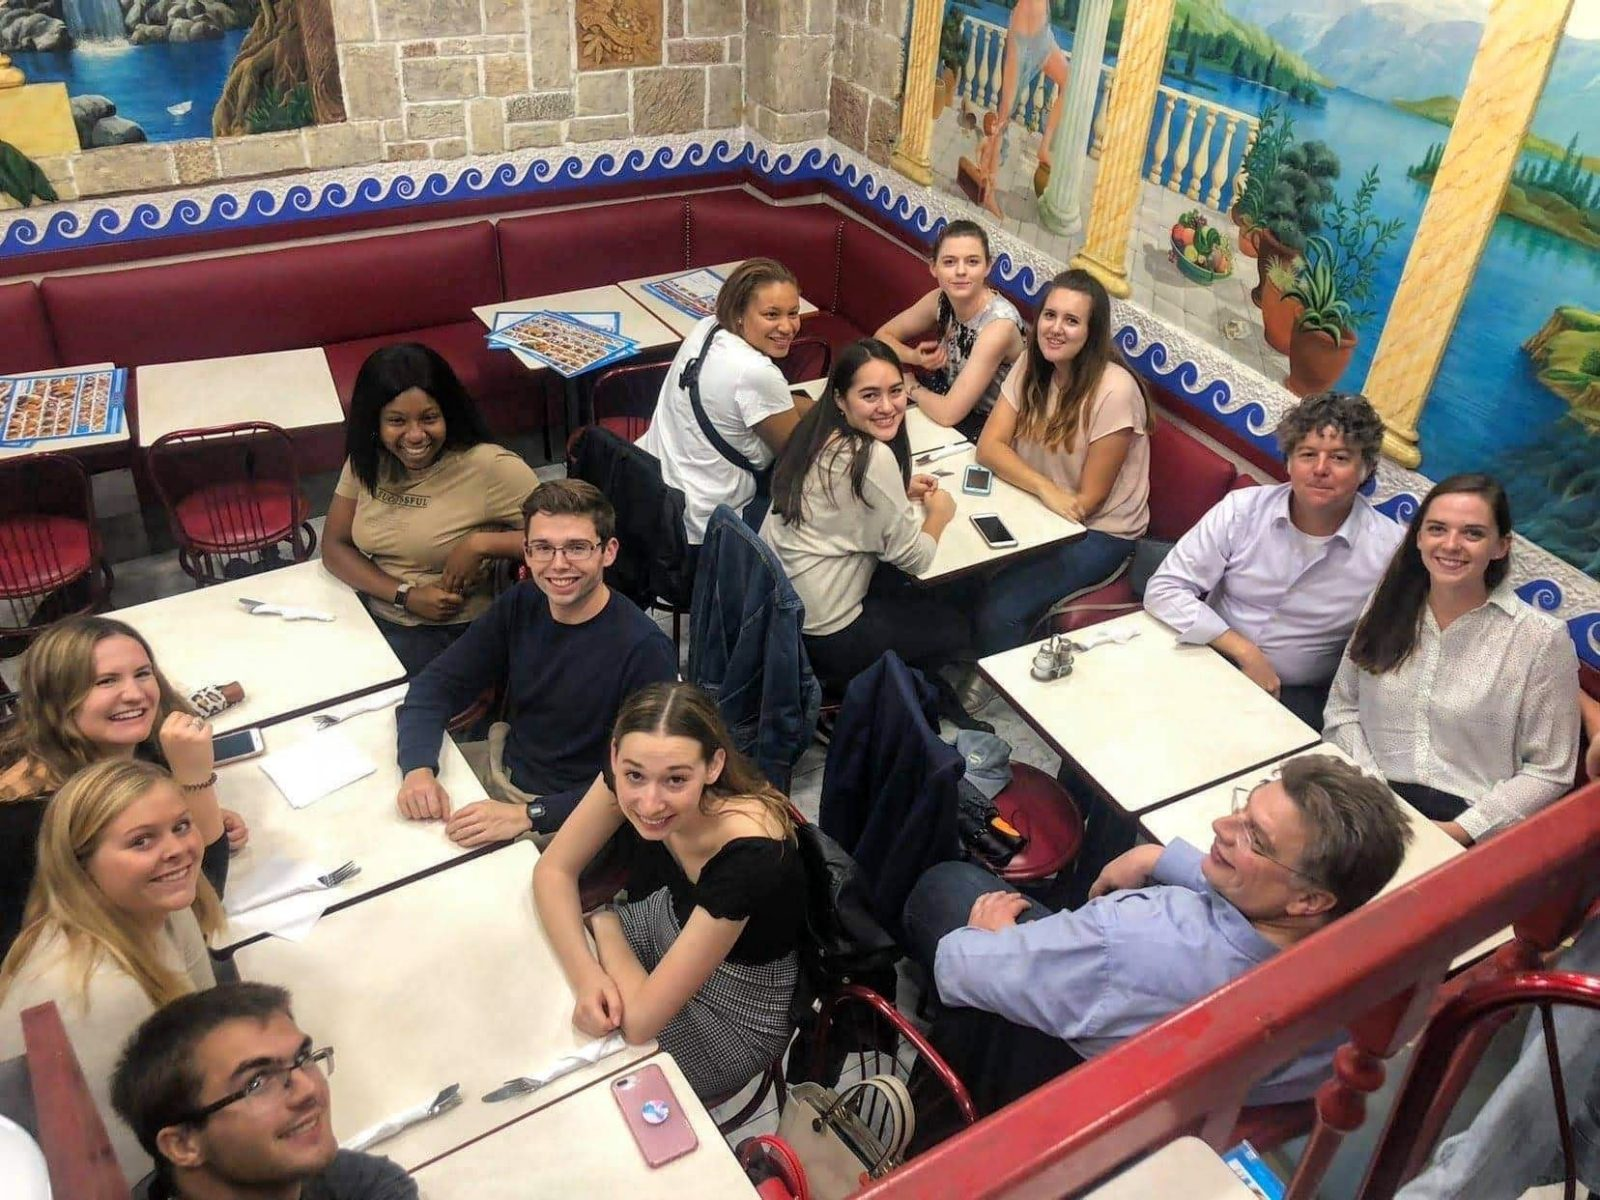 Group dinner in Brussels, Fall 2019